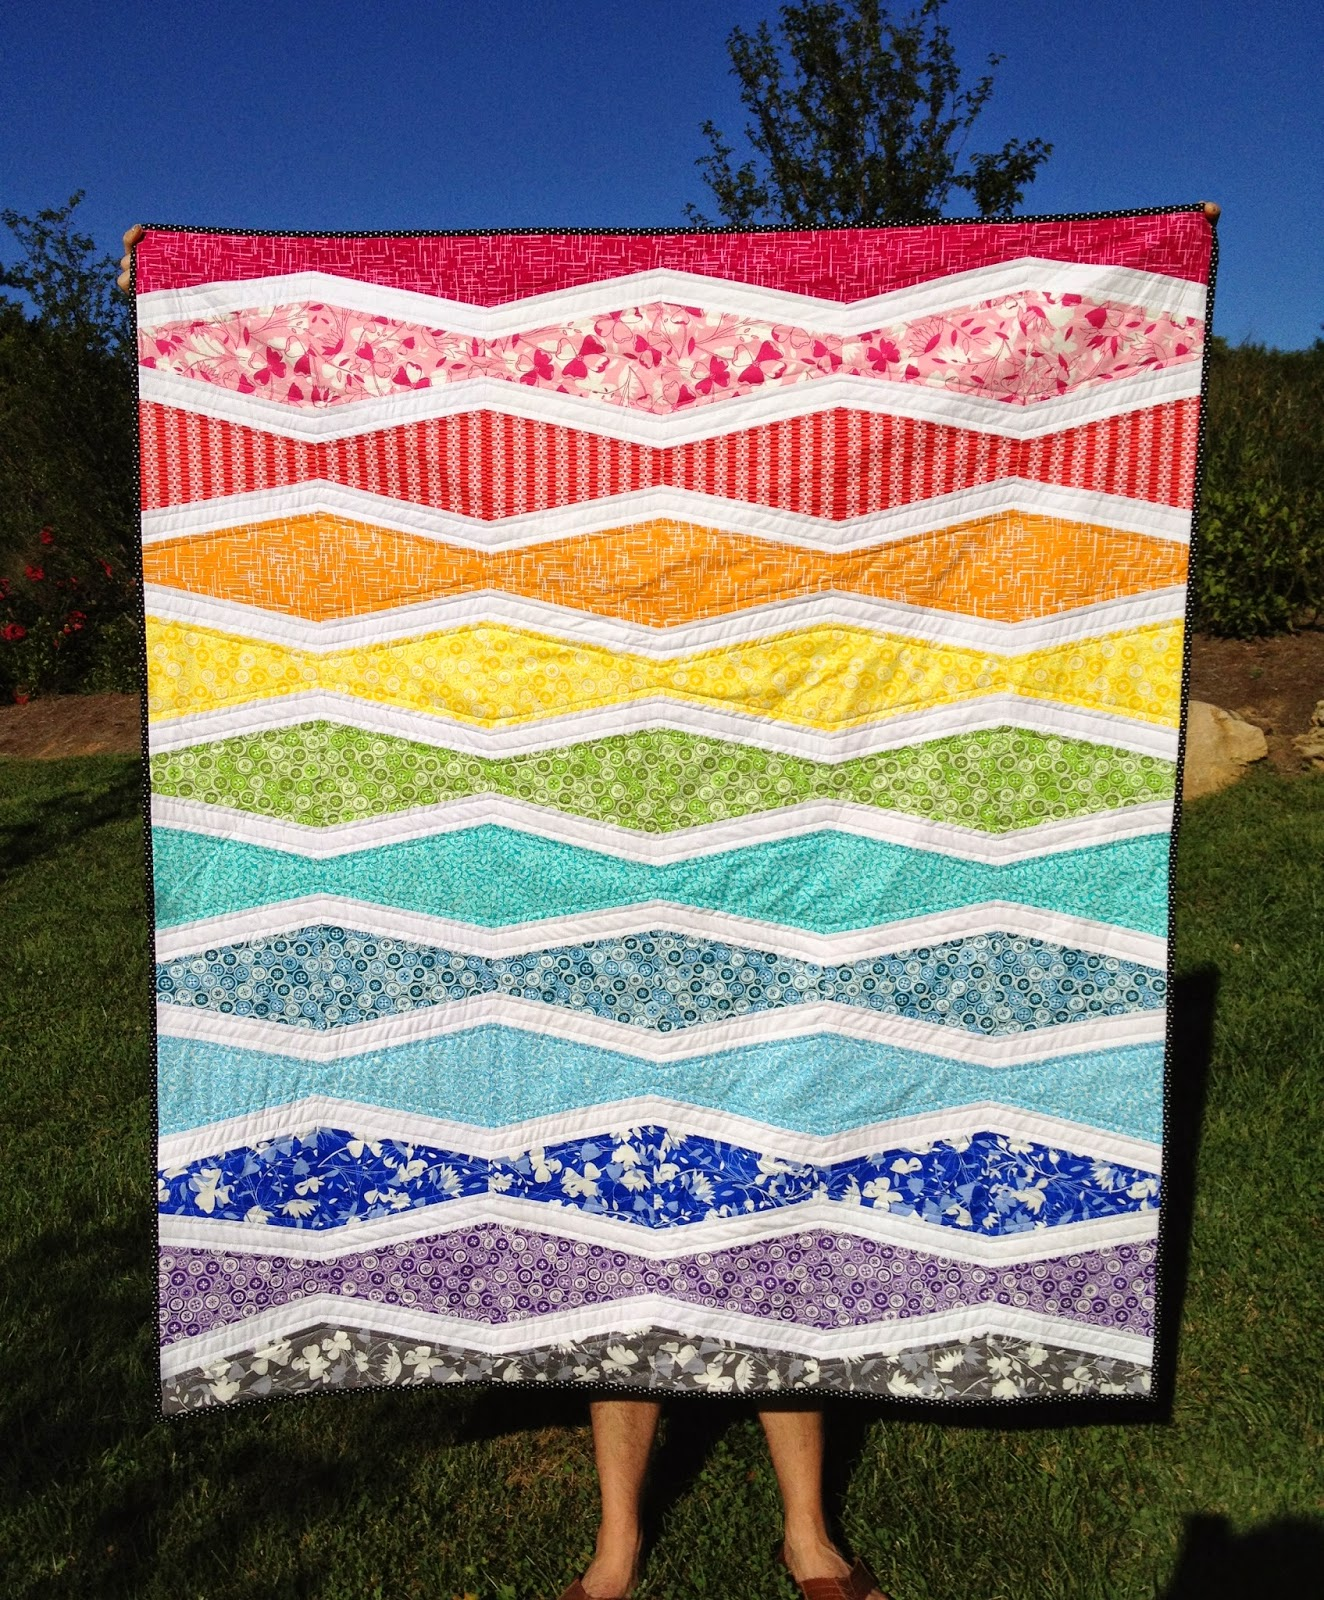 http://ablueskykindoflife.blogspot.com/2014/09/rainbow-wave-quilt-is-finished.html